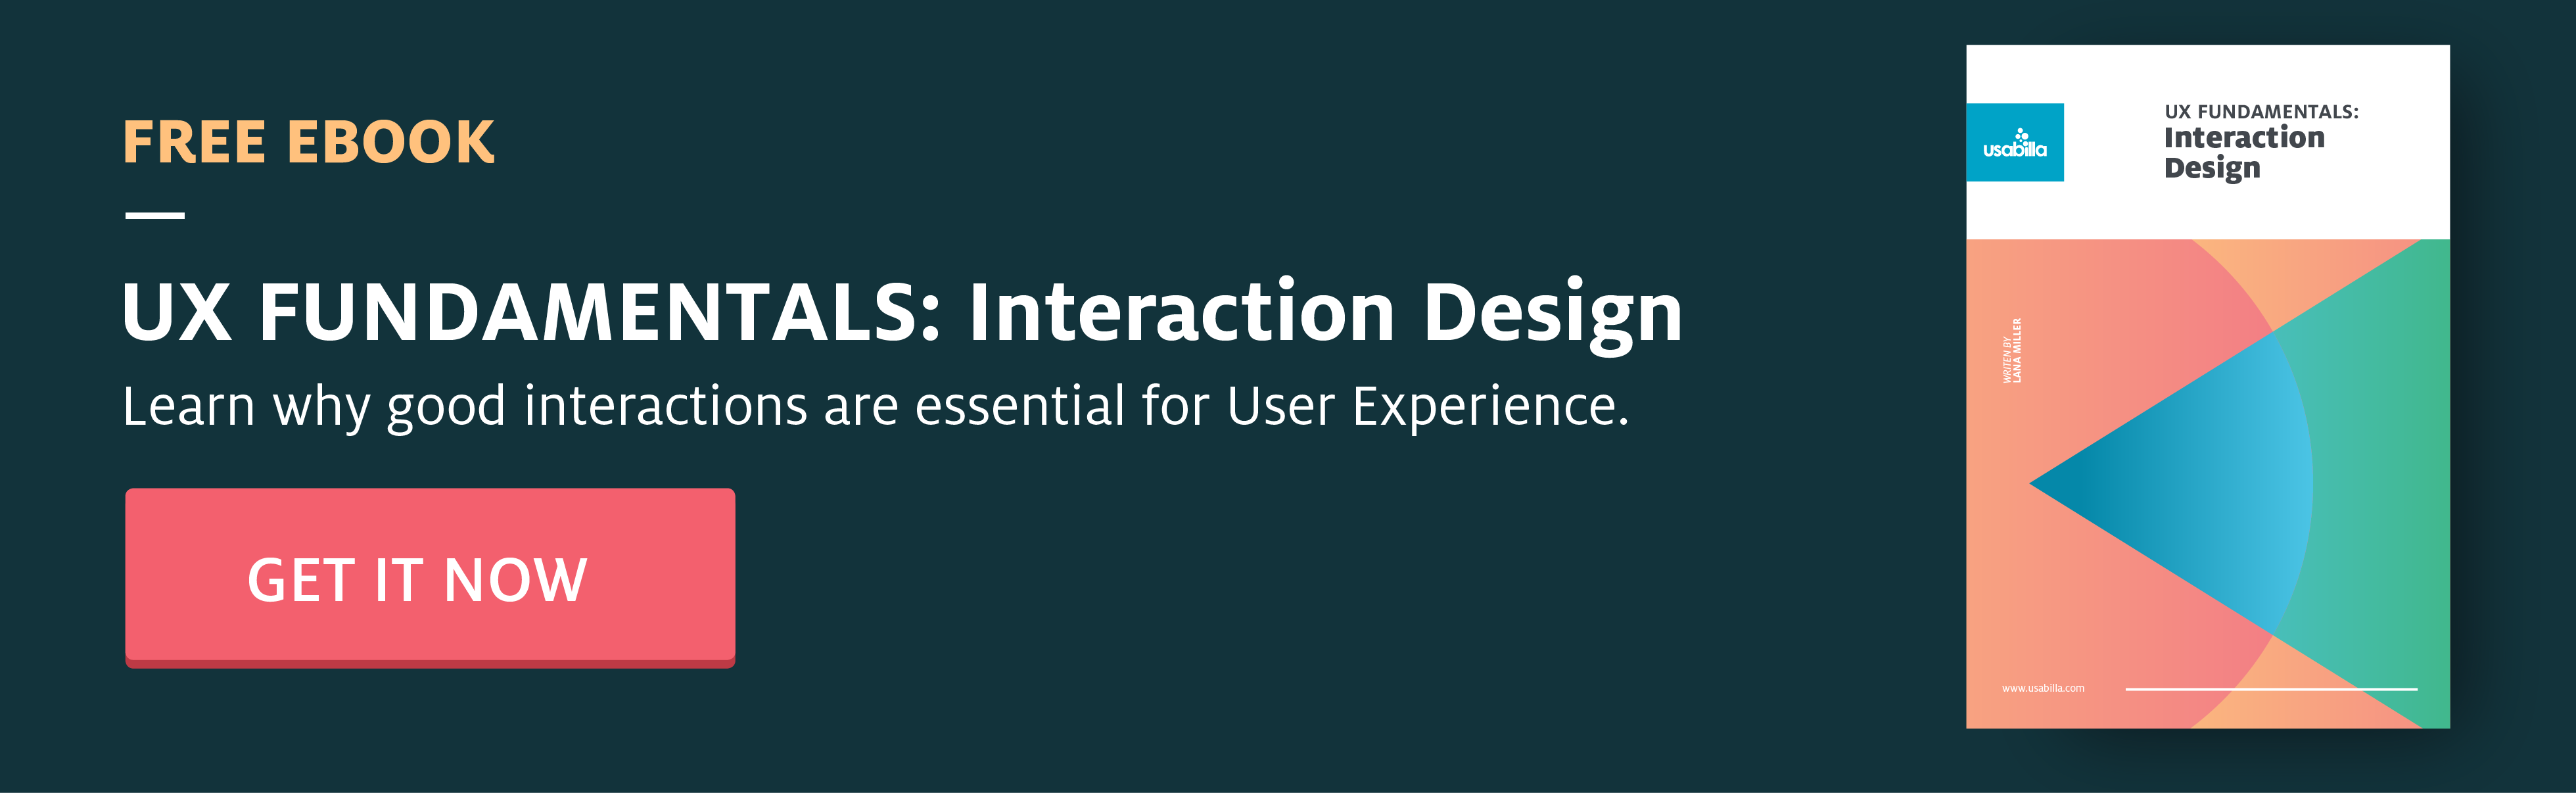 Free Ebook Download: Interaction Design